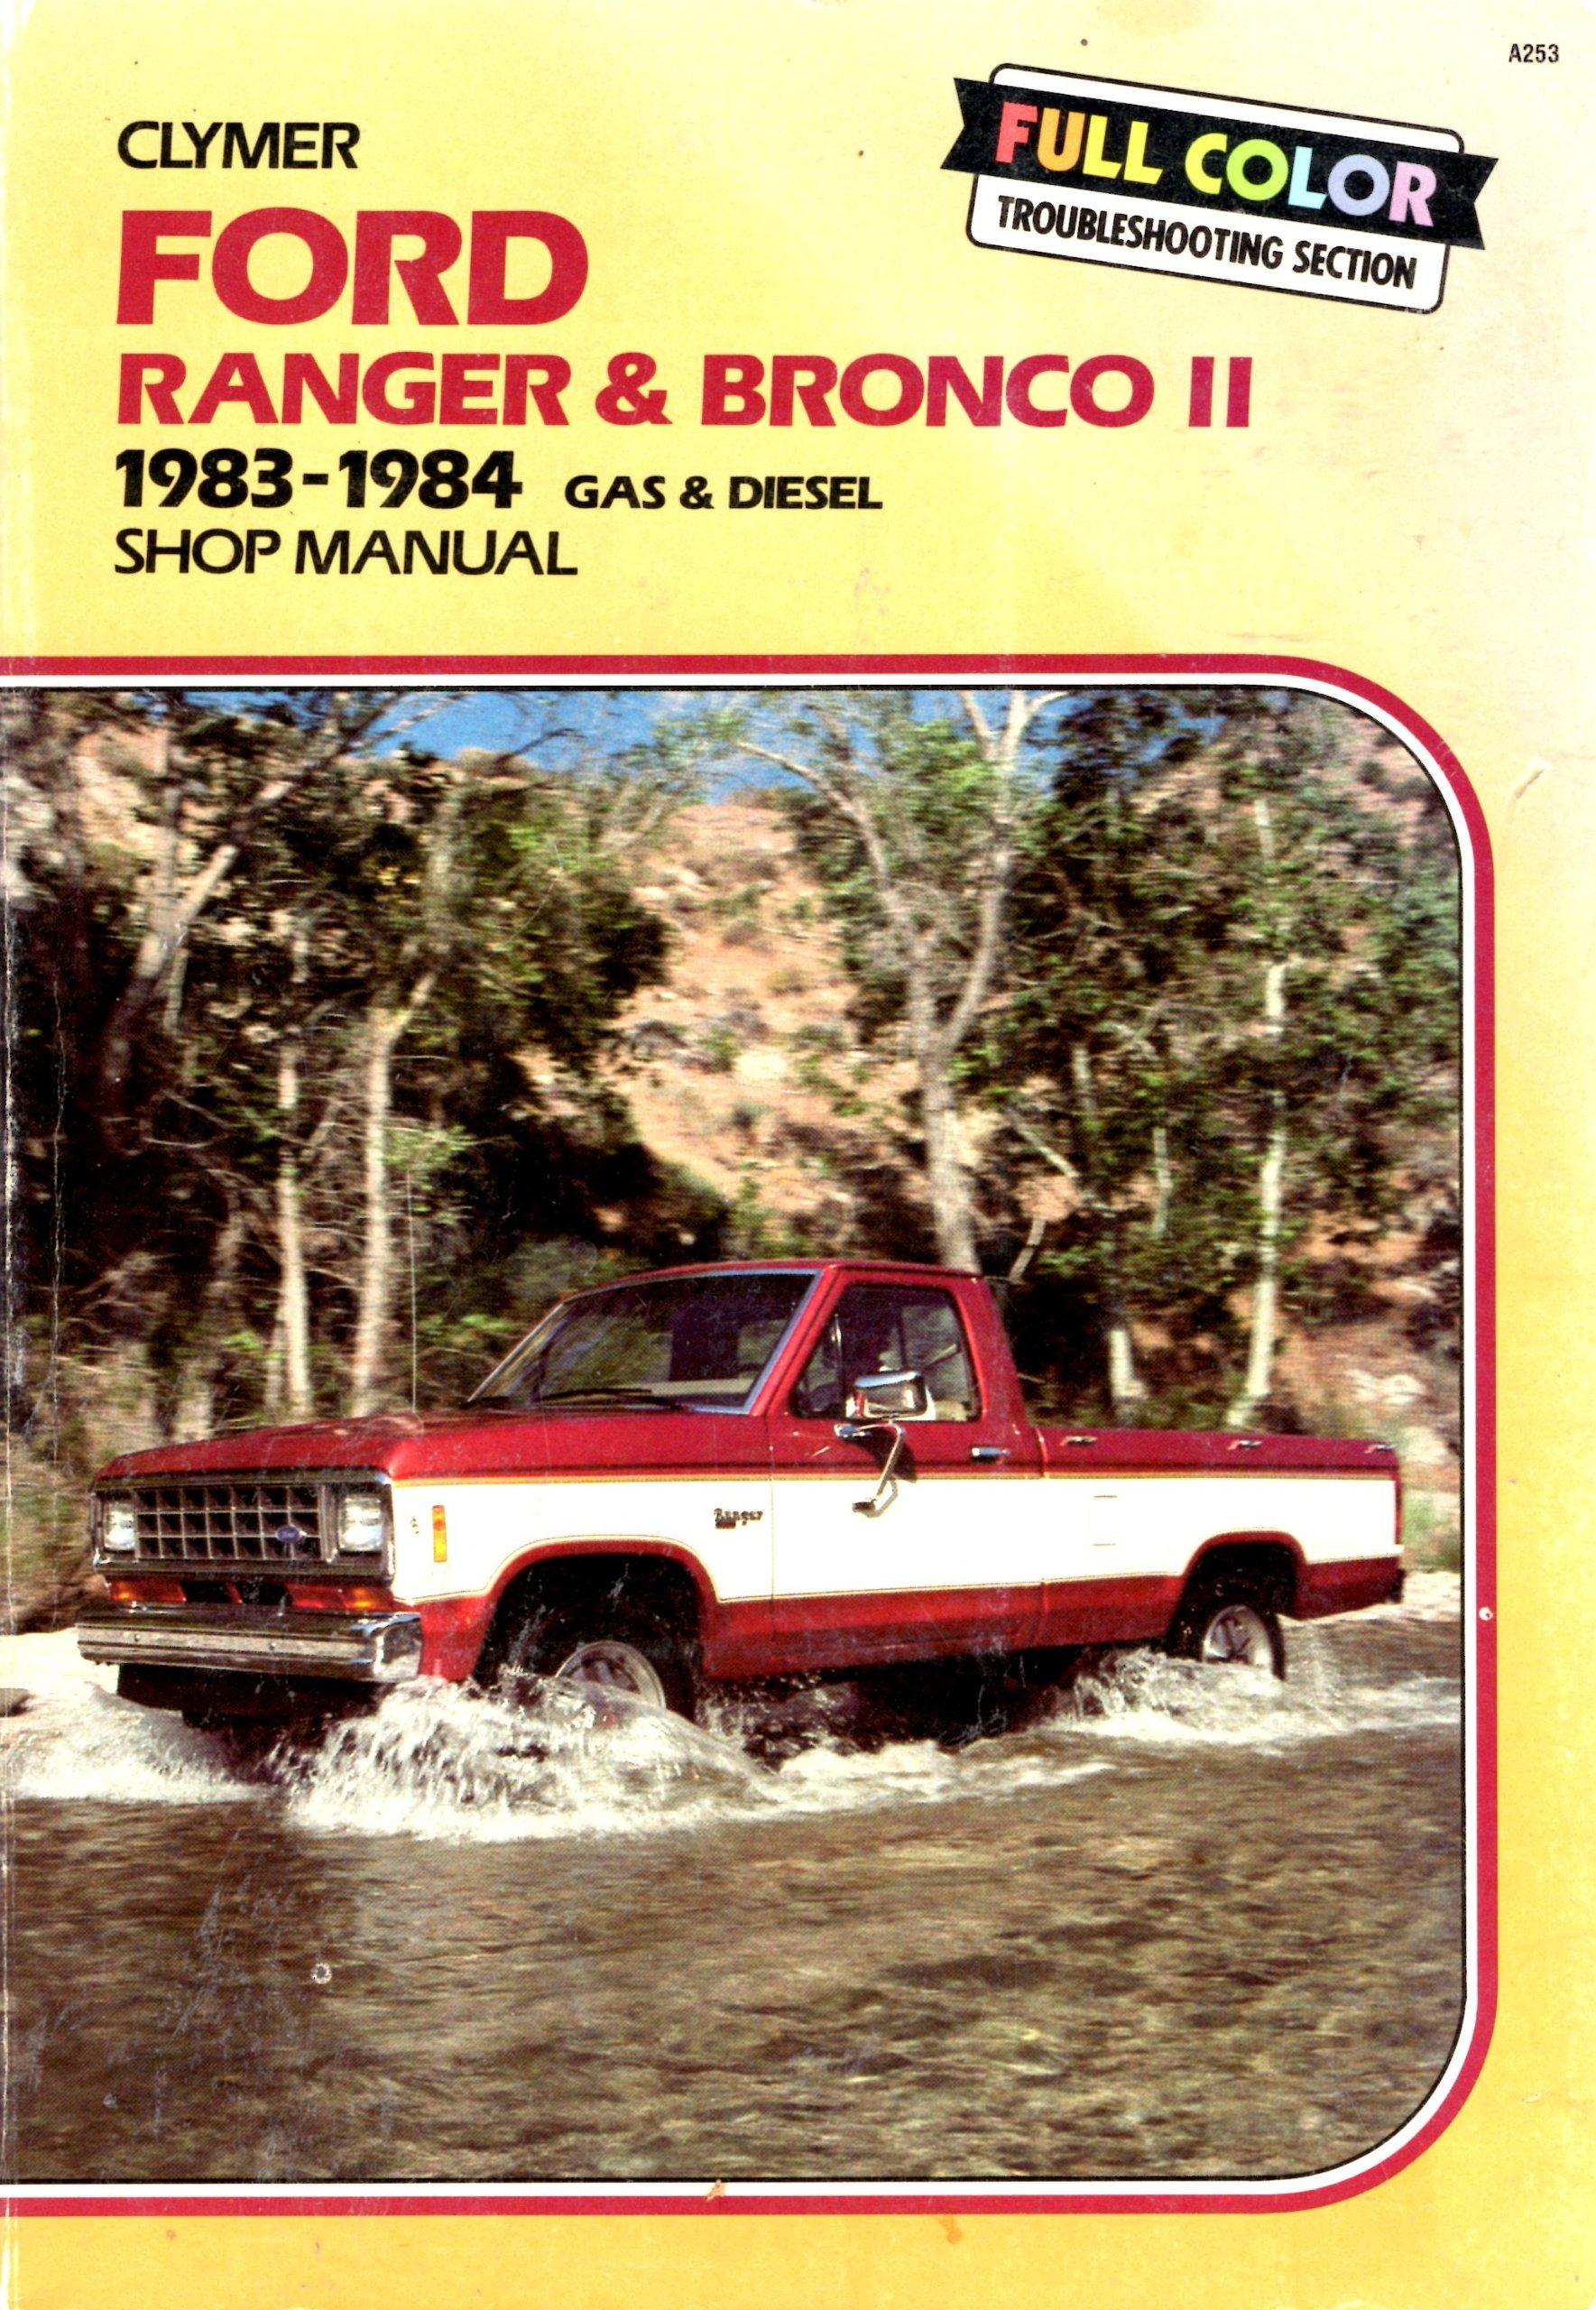 Ford Ranger and Bronco II 1983-1988 Gas and Diesel Shop Manual: Kalton C.  Lahue: 9780892873760: Amazon.com: Books